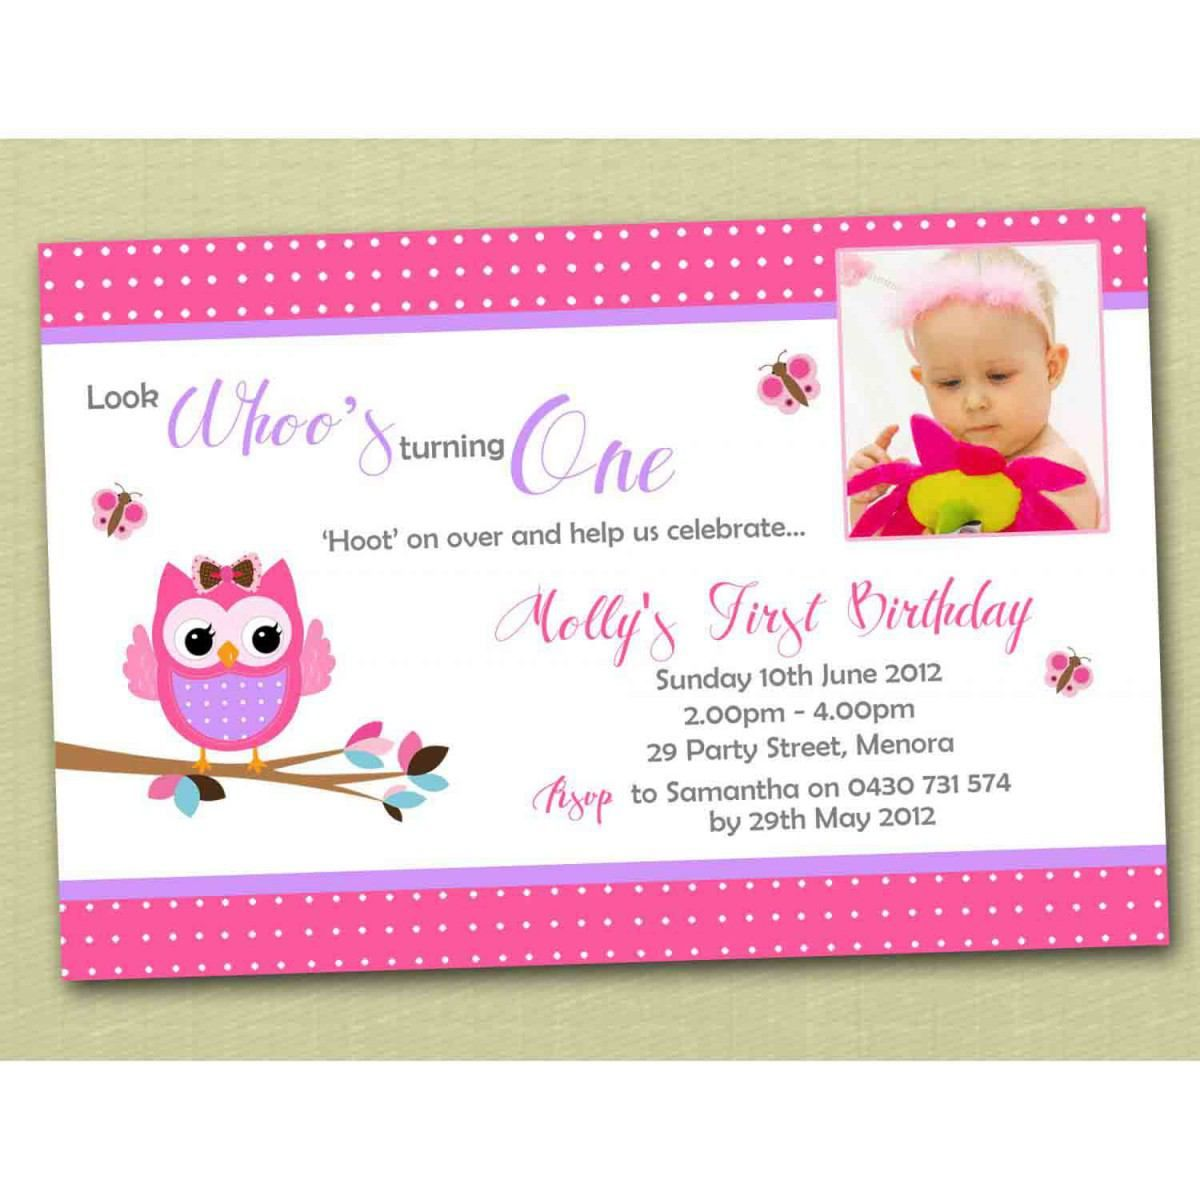 Christening Invitation Card Maker Christening Invitation Maker – Invite Card Maker